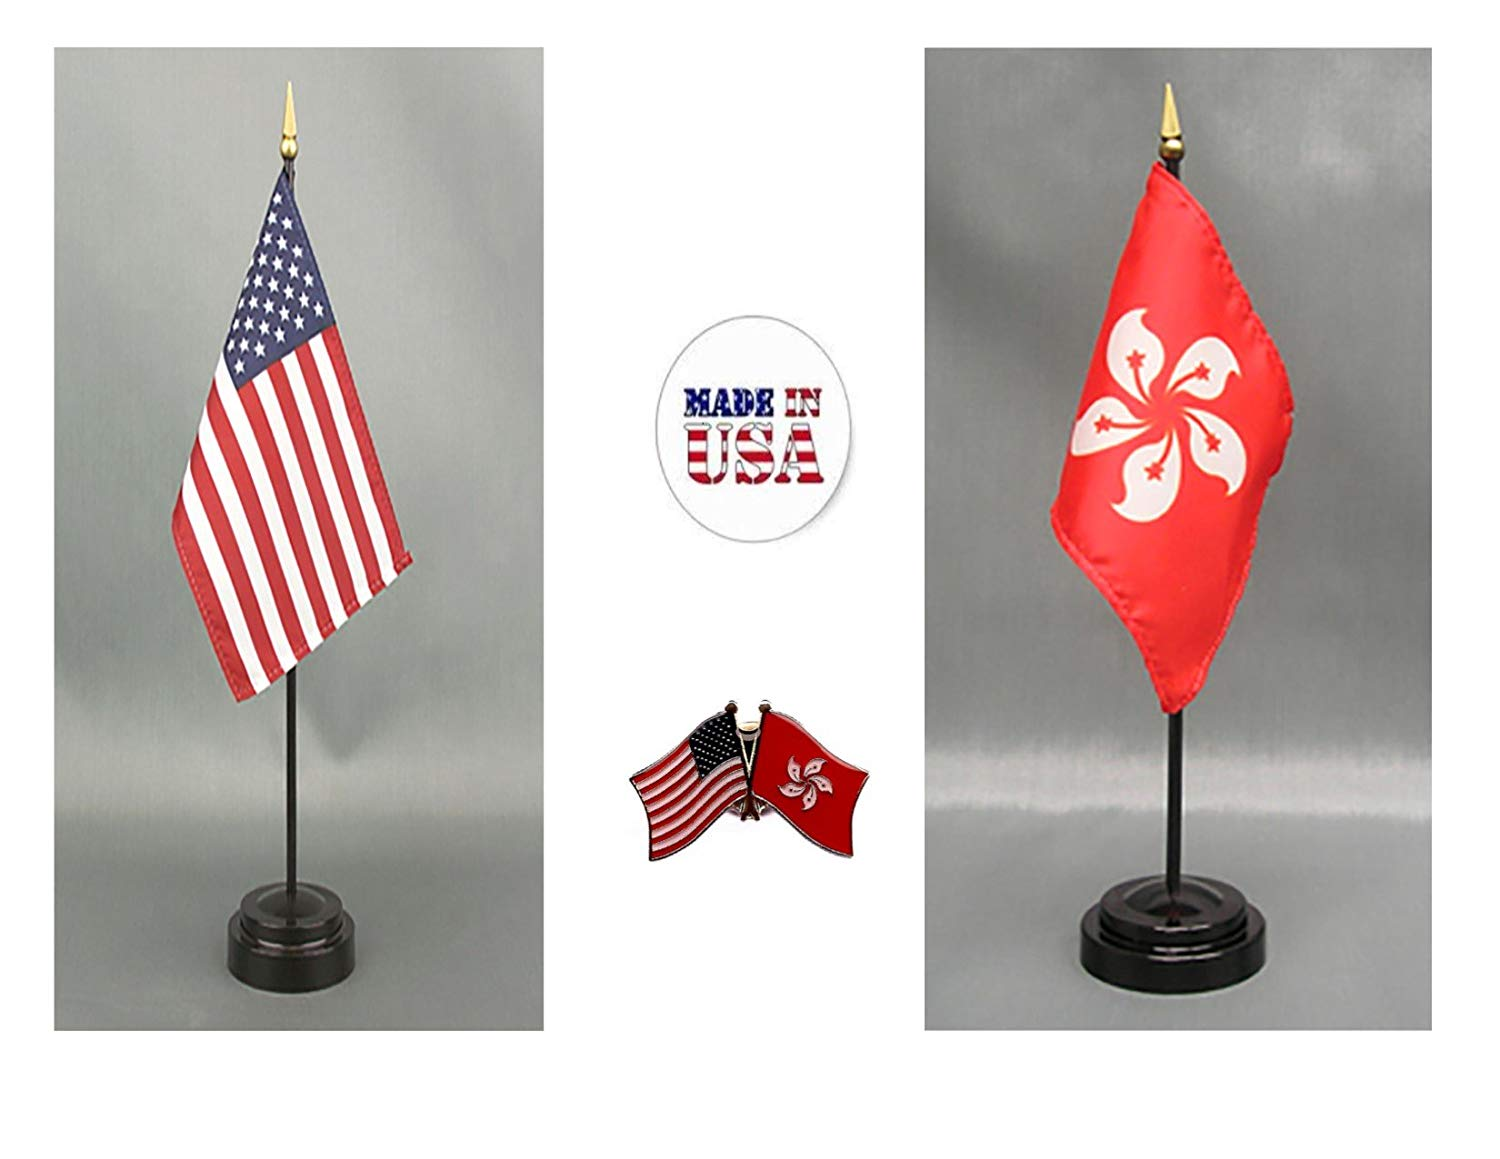 "Made in The USA. 1 American and 1 Hong Kong Rayon 4""x6"" Office Desk & Little Hand Waving Table Flag, Includes 2 Flag Stands & 2 Small 4""x6"" Mini Stick Flags, 1 US/Hong Kong Friendship Flag Lapel Pin."